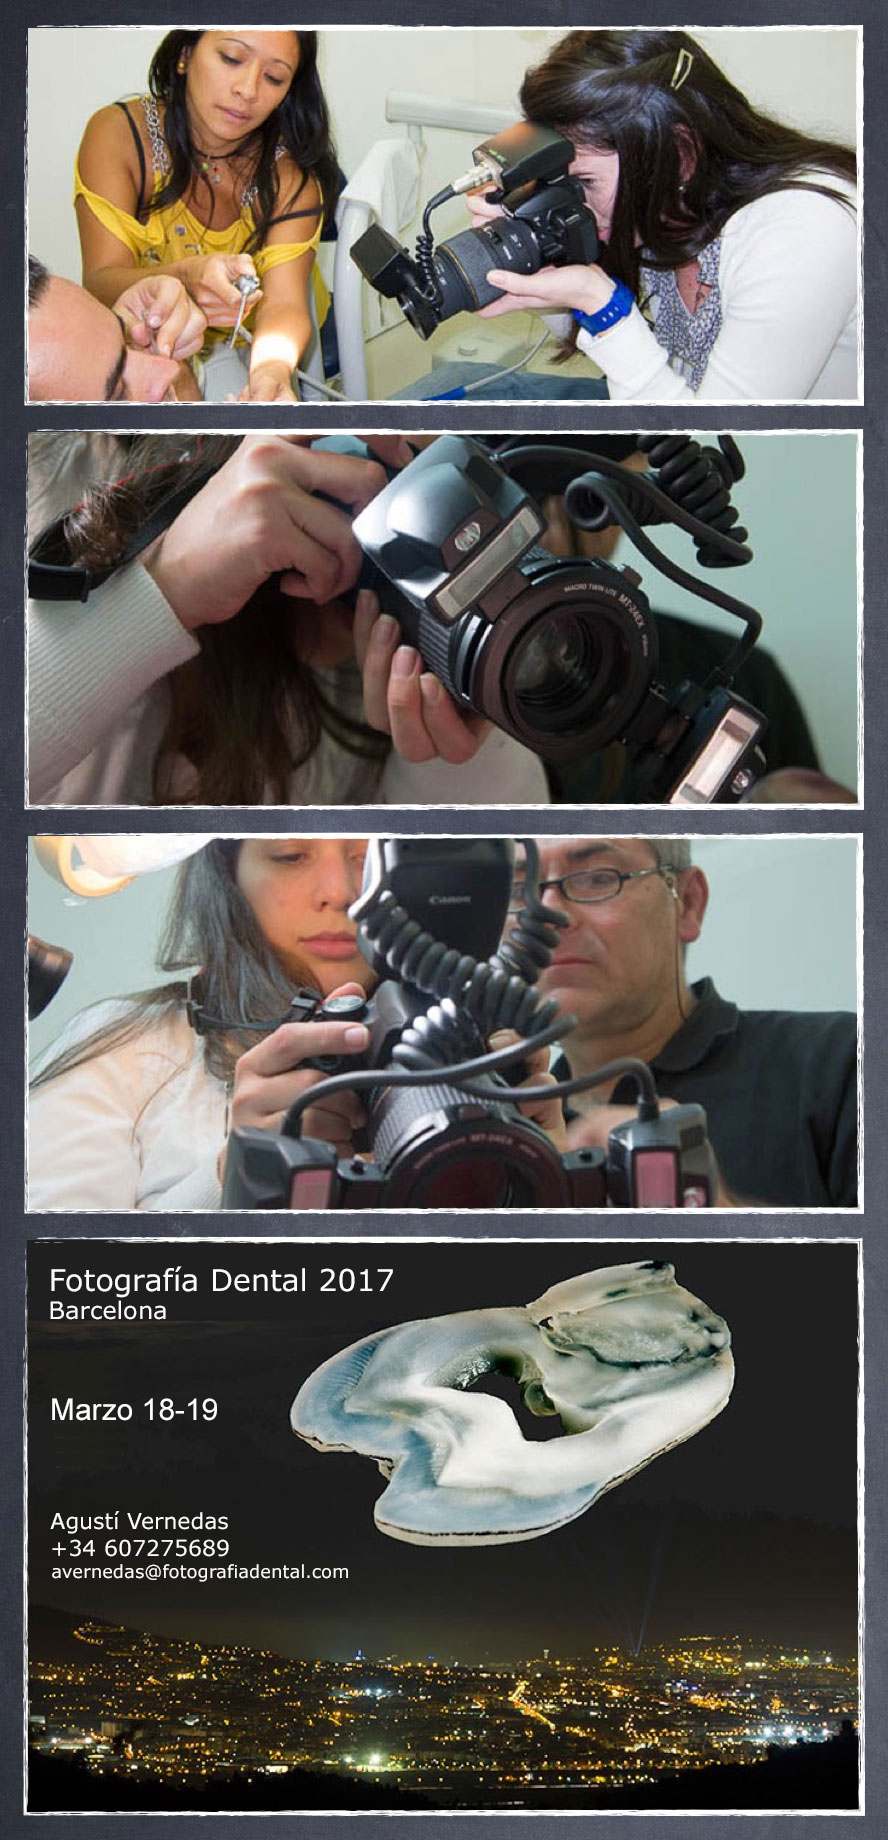 Curs-Foto-Dental-BCN-2017-03-Mail.jpg